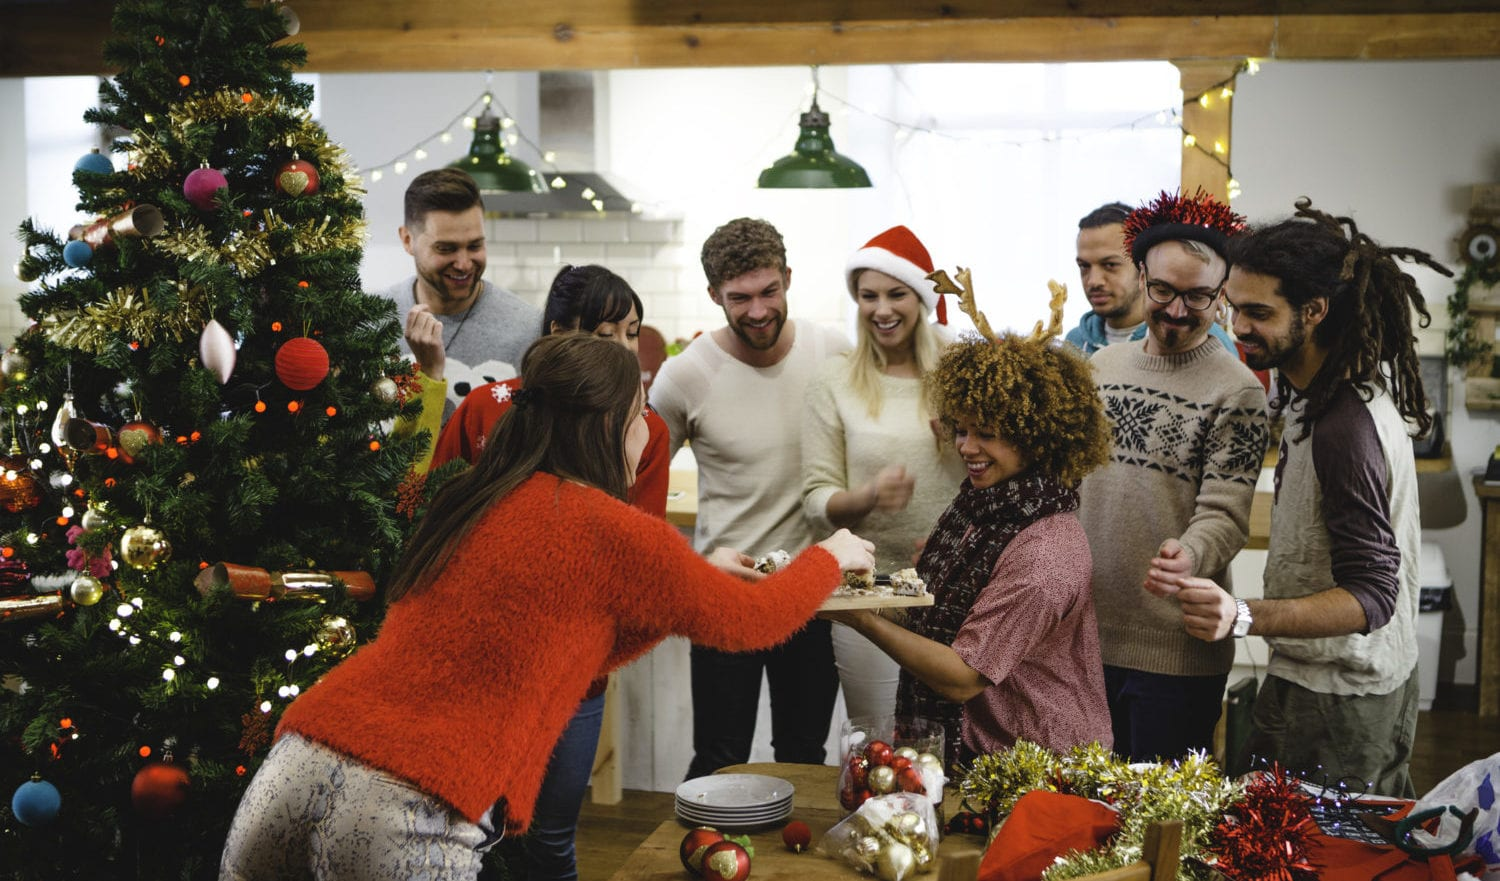 A group of friends are decorating the Christmas tree together. A woman is holding some cake and all the friends are digging in and enjoying themselves.